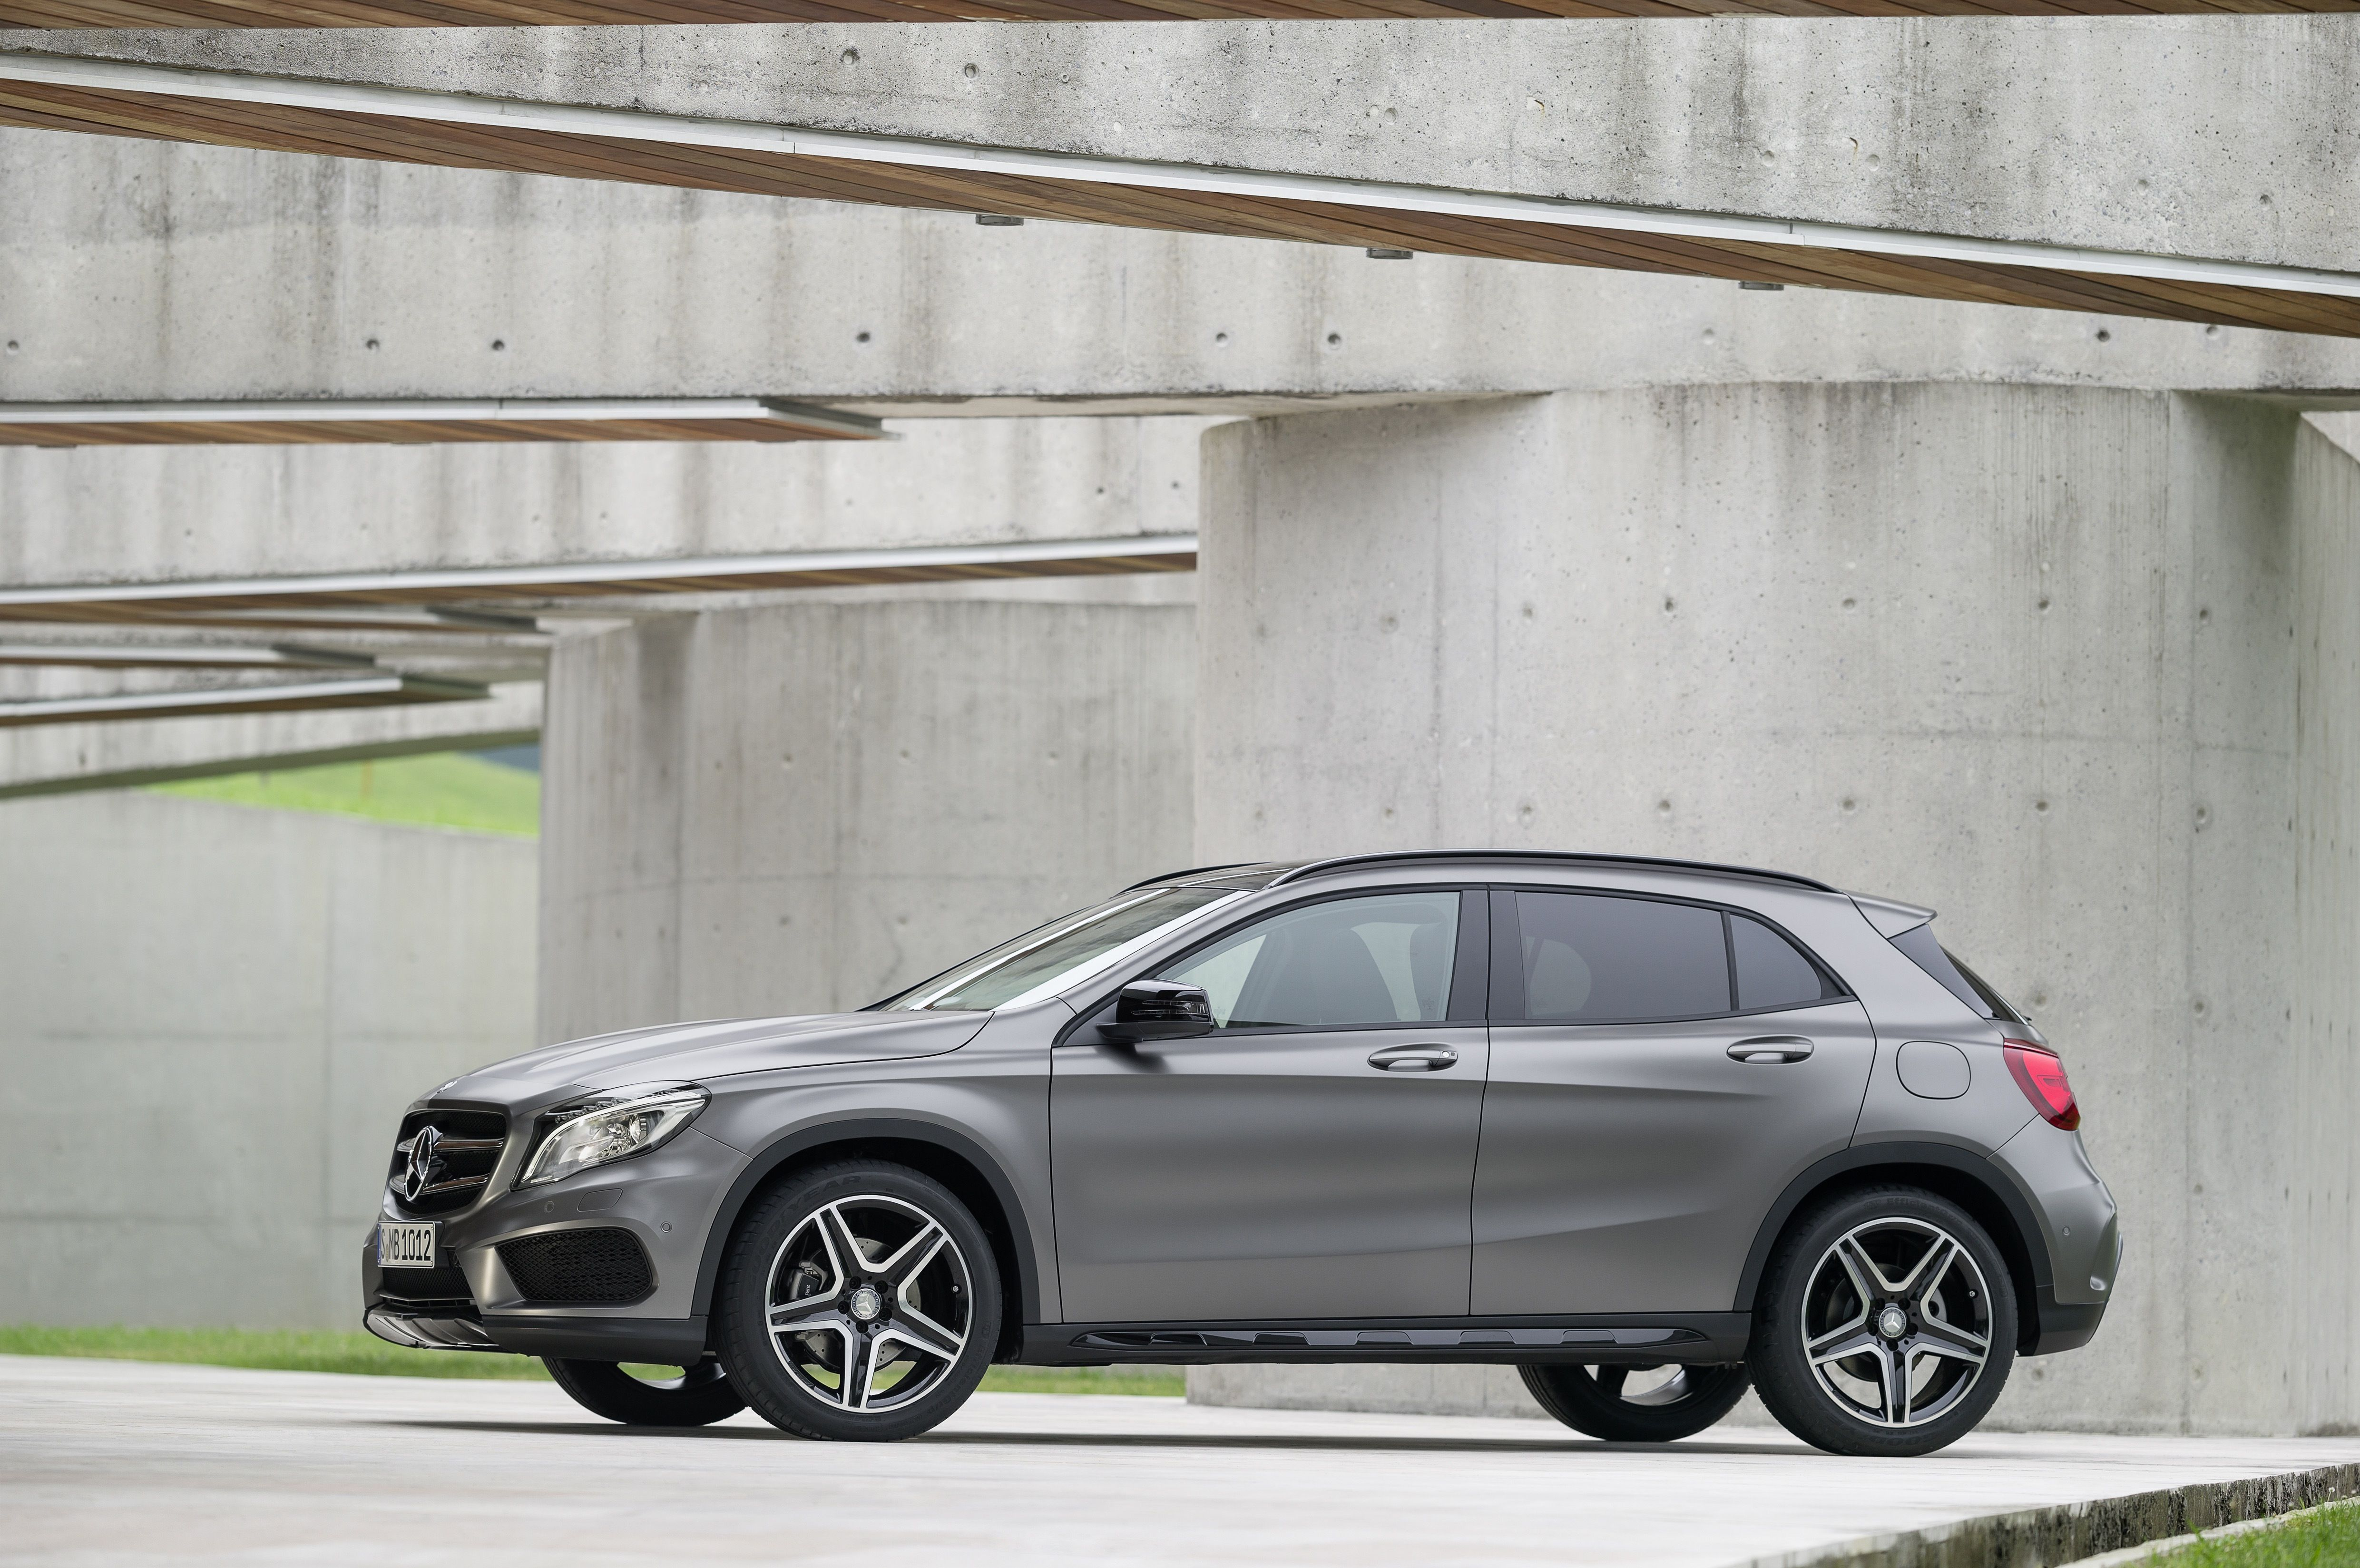 Posing Not Posting The New Gla Mbcars Combined Fuel Consumption 7 1 4 3 L 100km 151 114 G Km Mercedes Benz Gla Mercedes Gla Mercedes Benz 2015